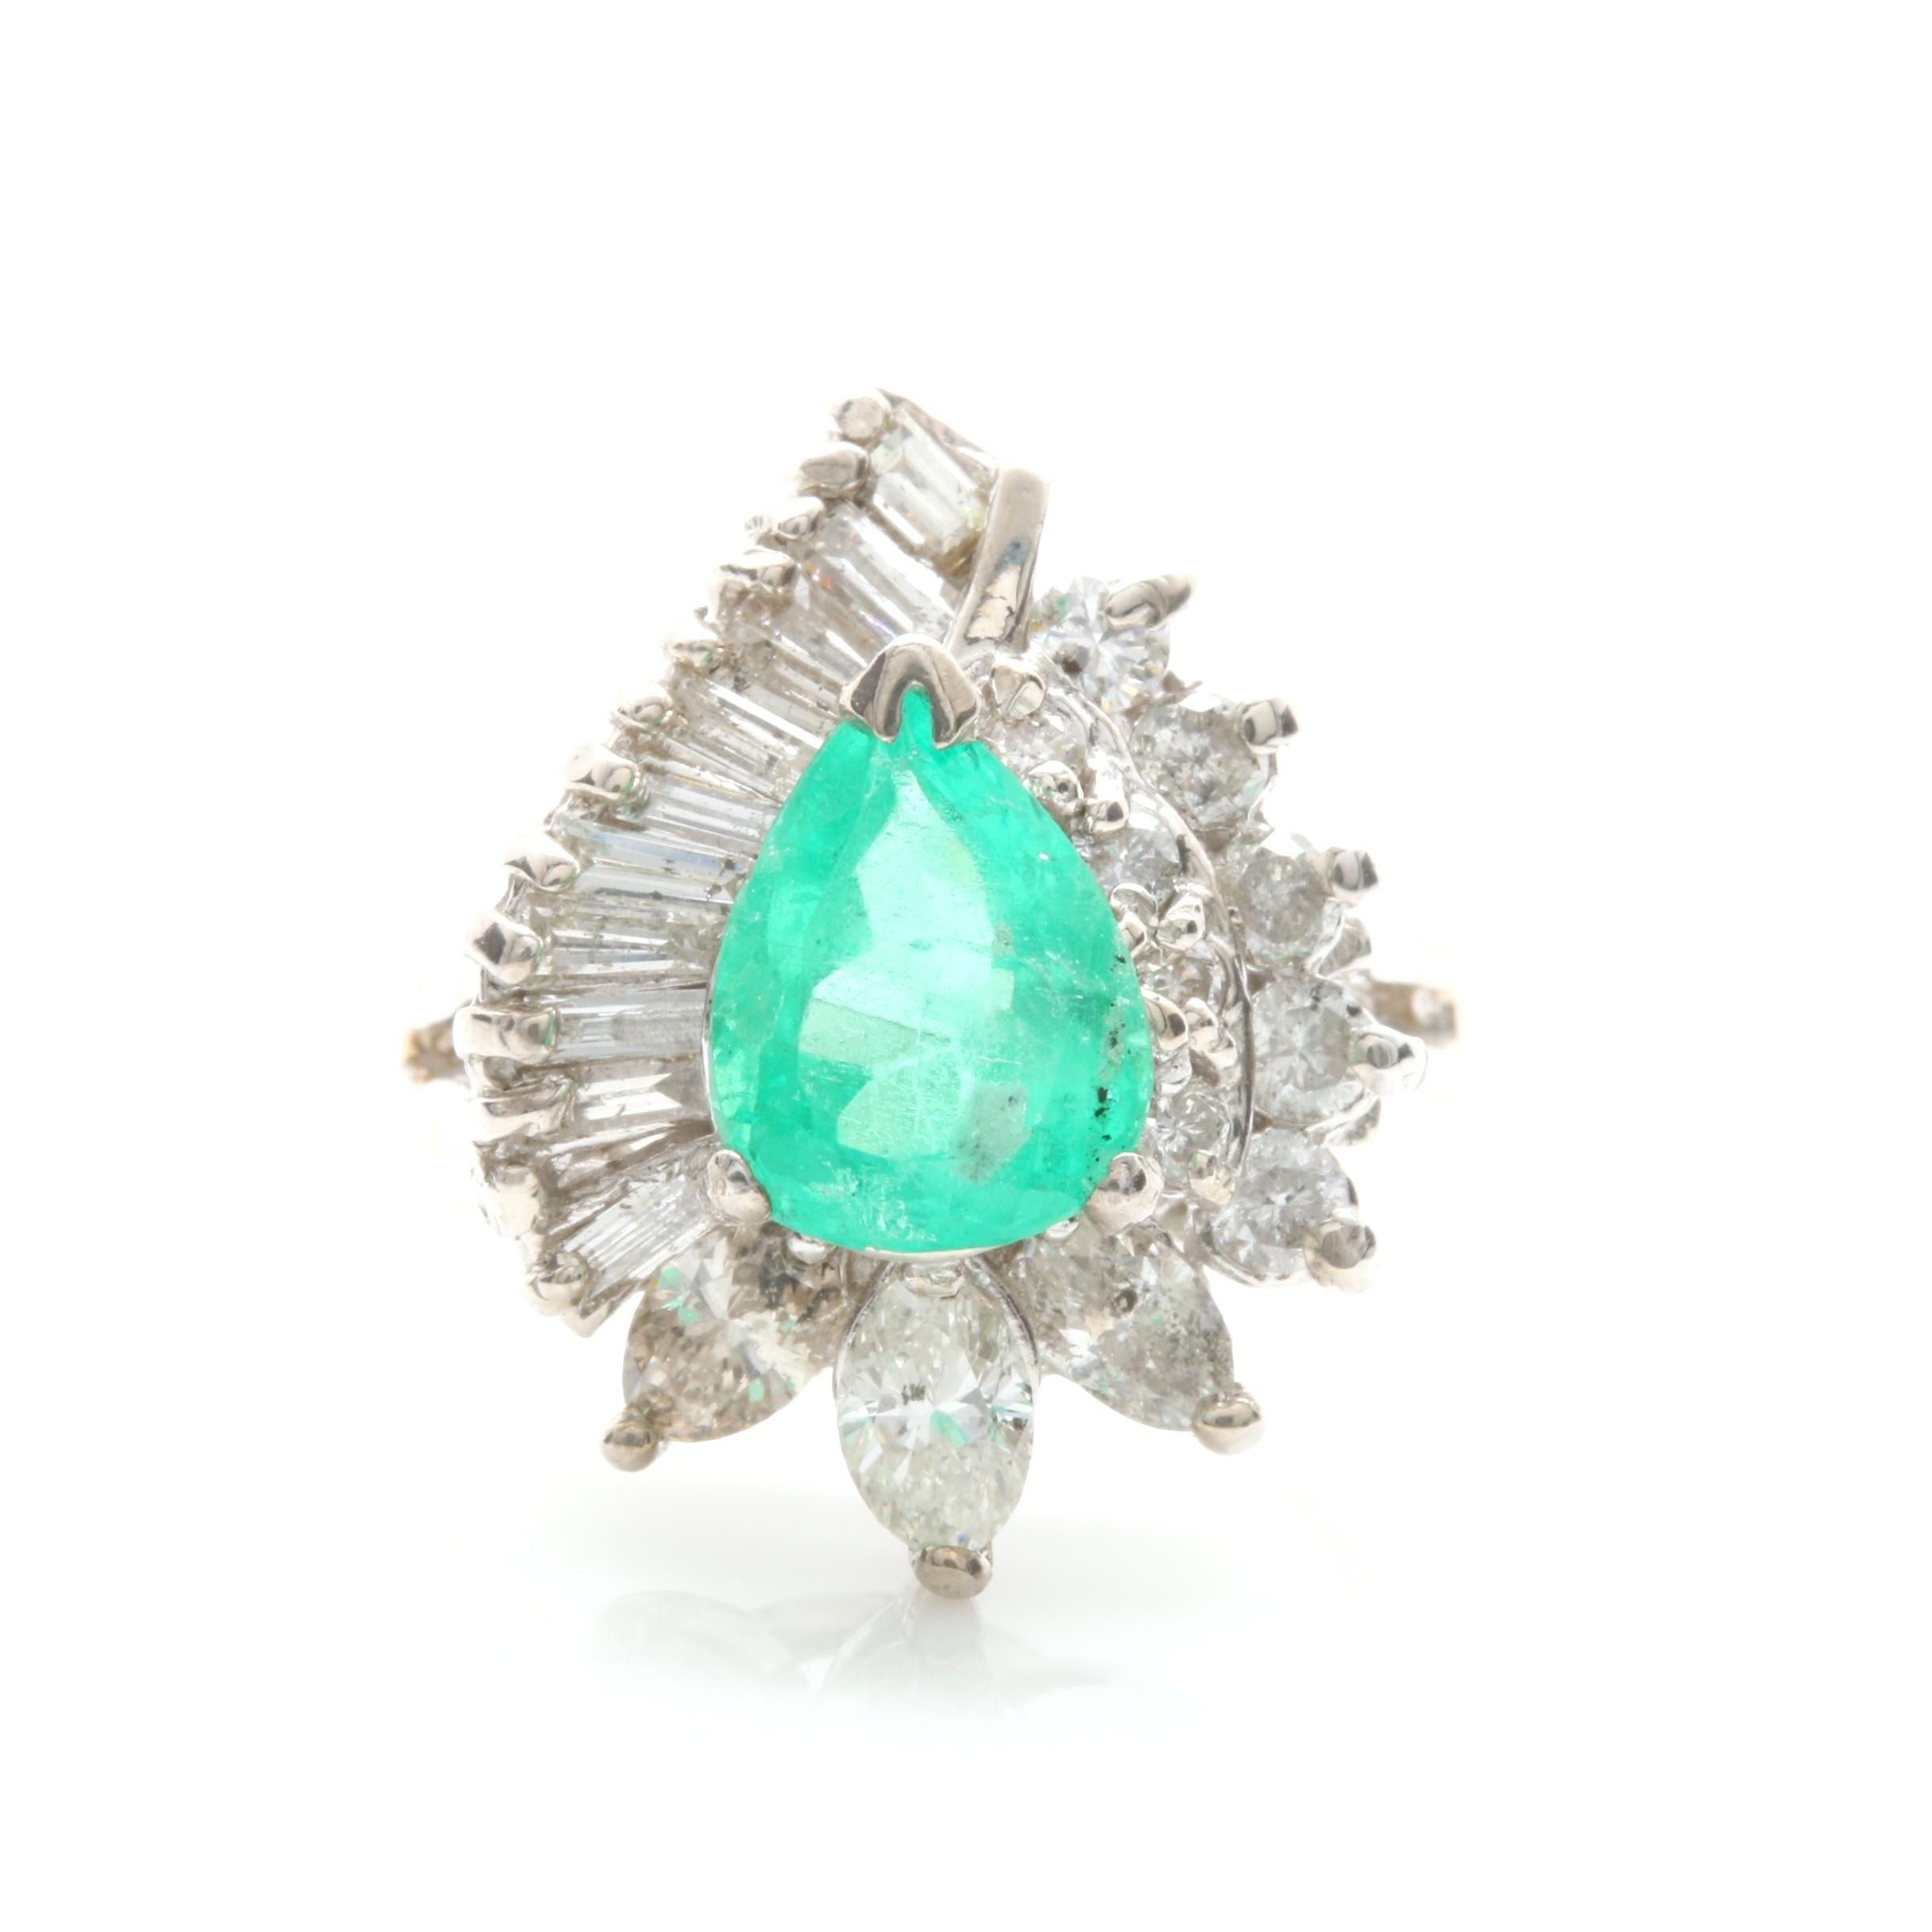 14K White Gold 1.15 CT Emerald and 1.31 CTW Diamond Ring